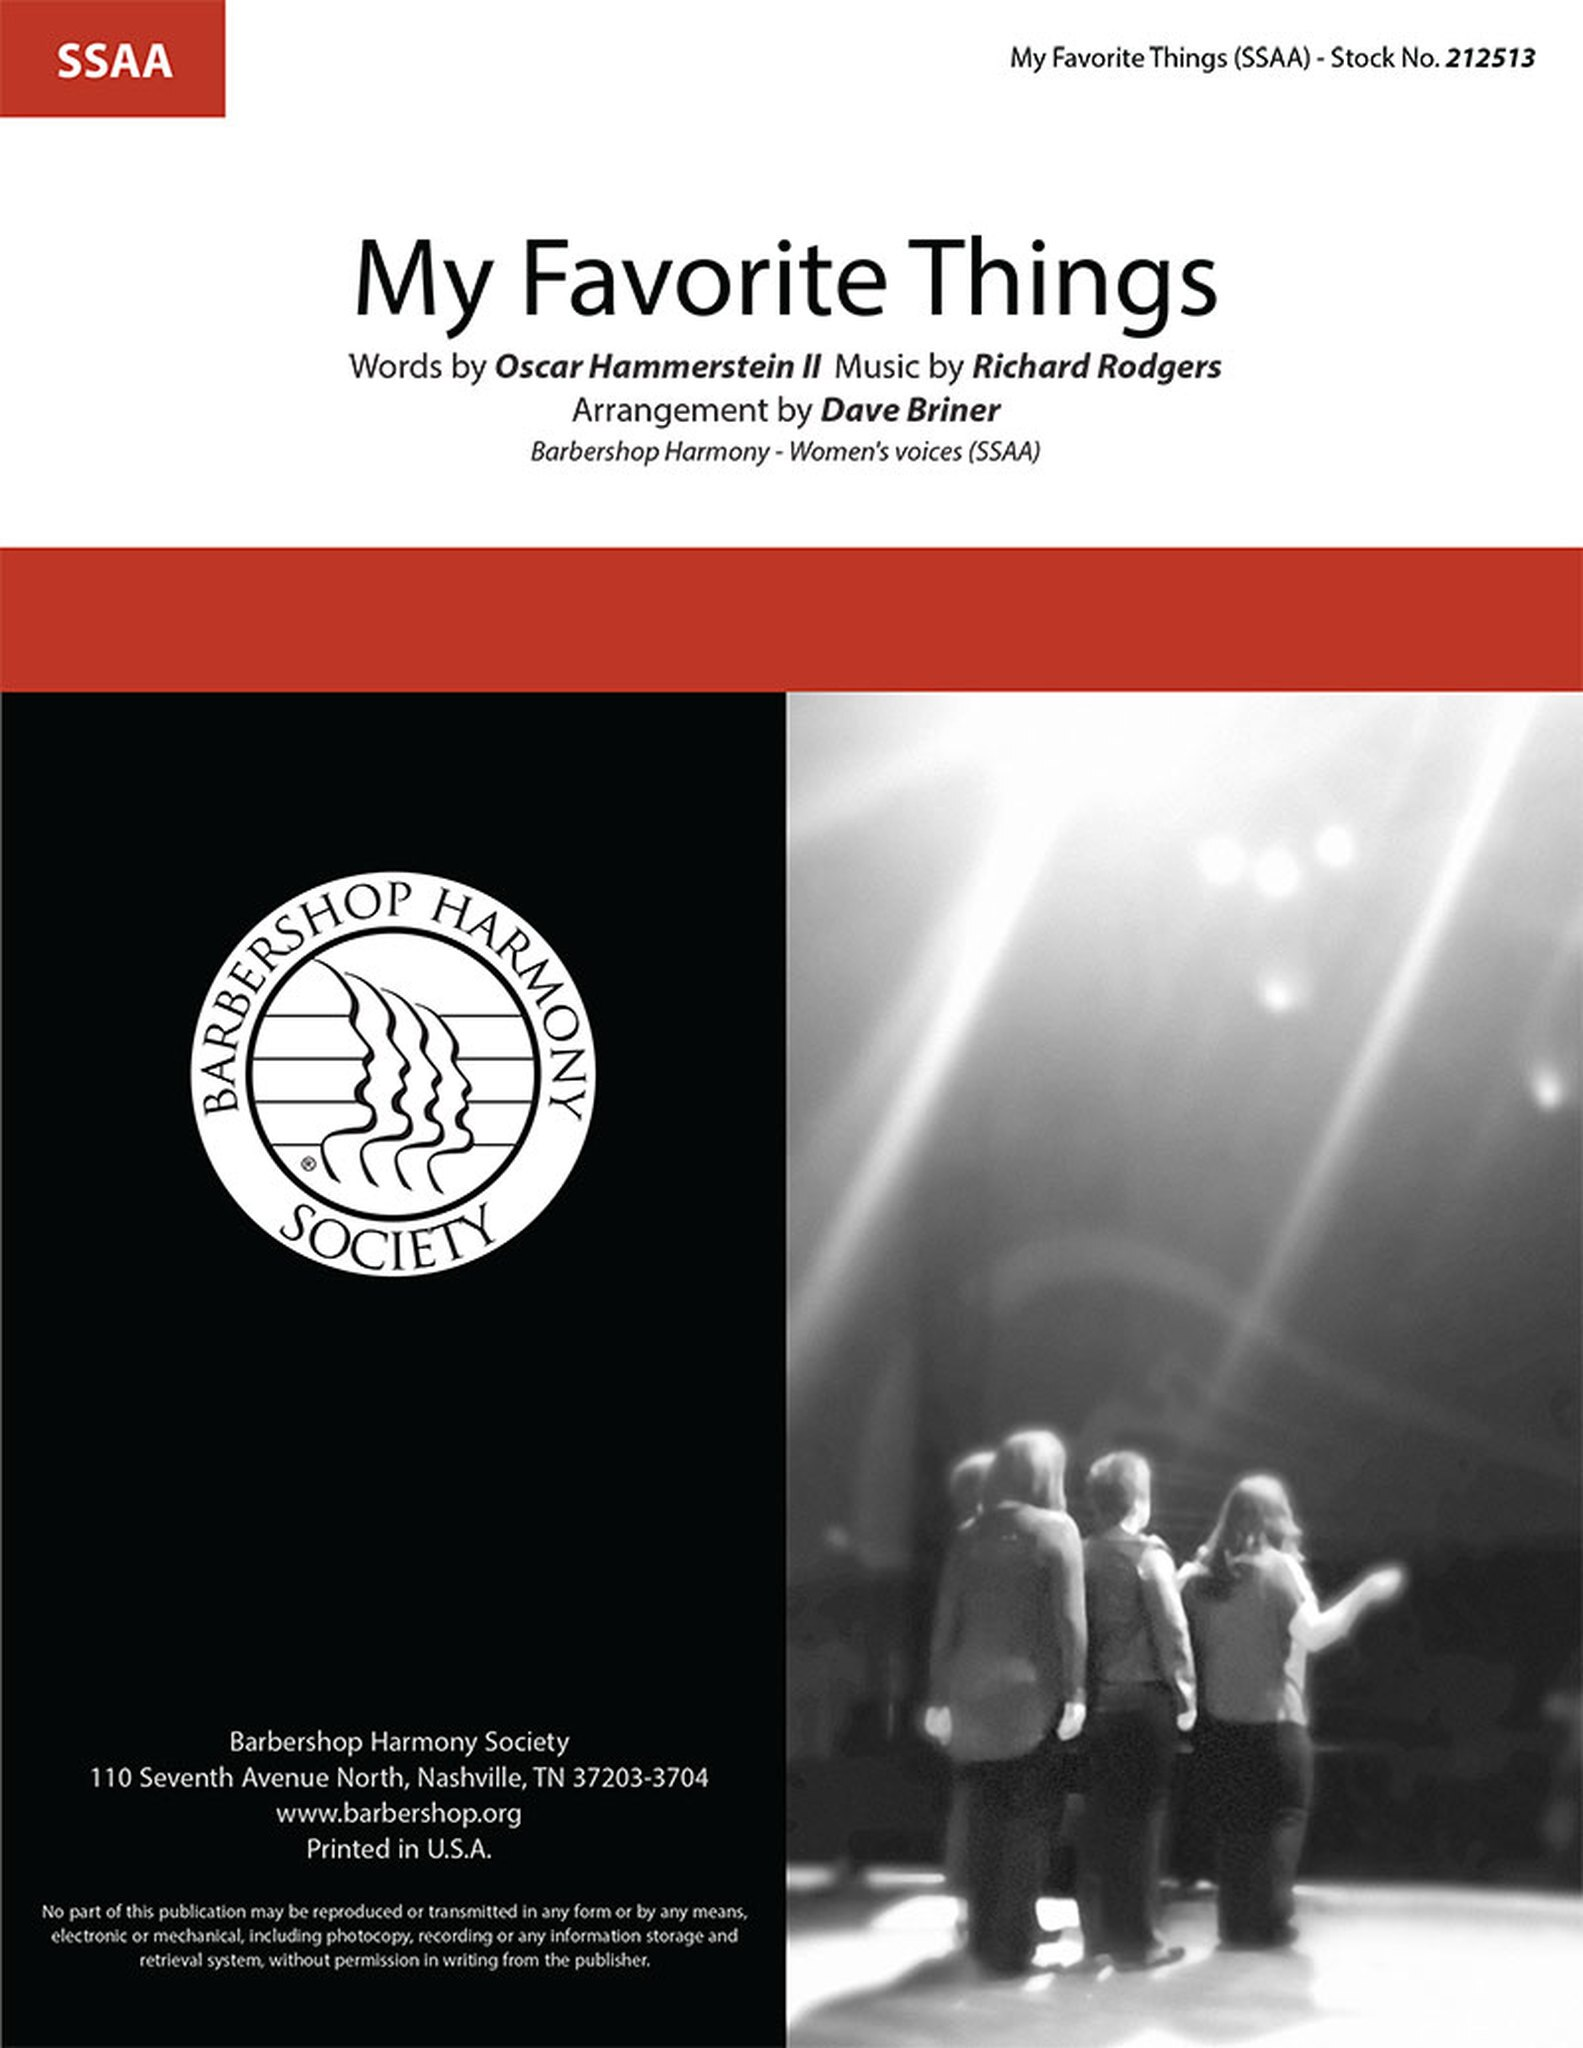 My Favorite Things : SSAA : Dave Briner : Richard Rodgers : The Sound Of Music : Songbook : 212513